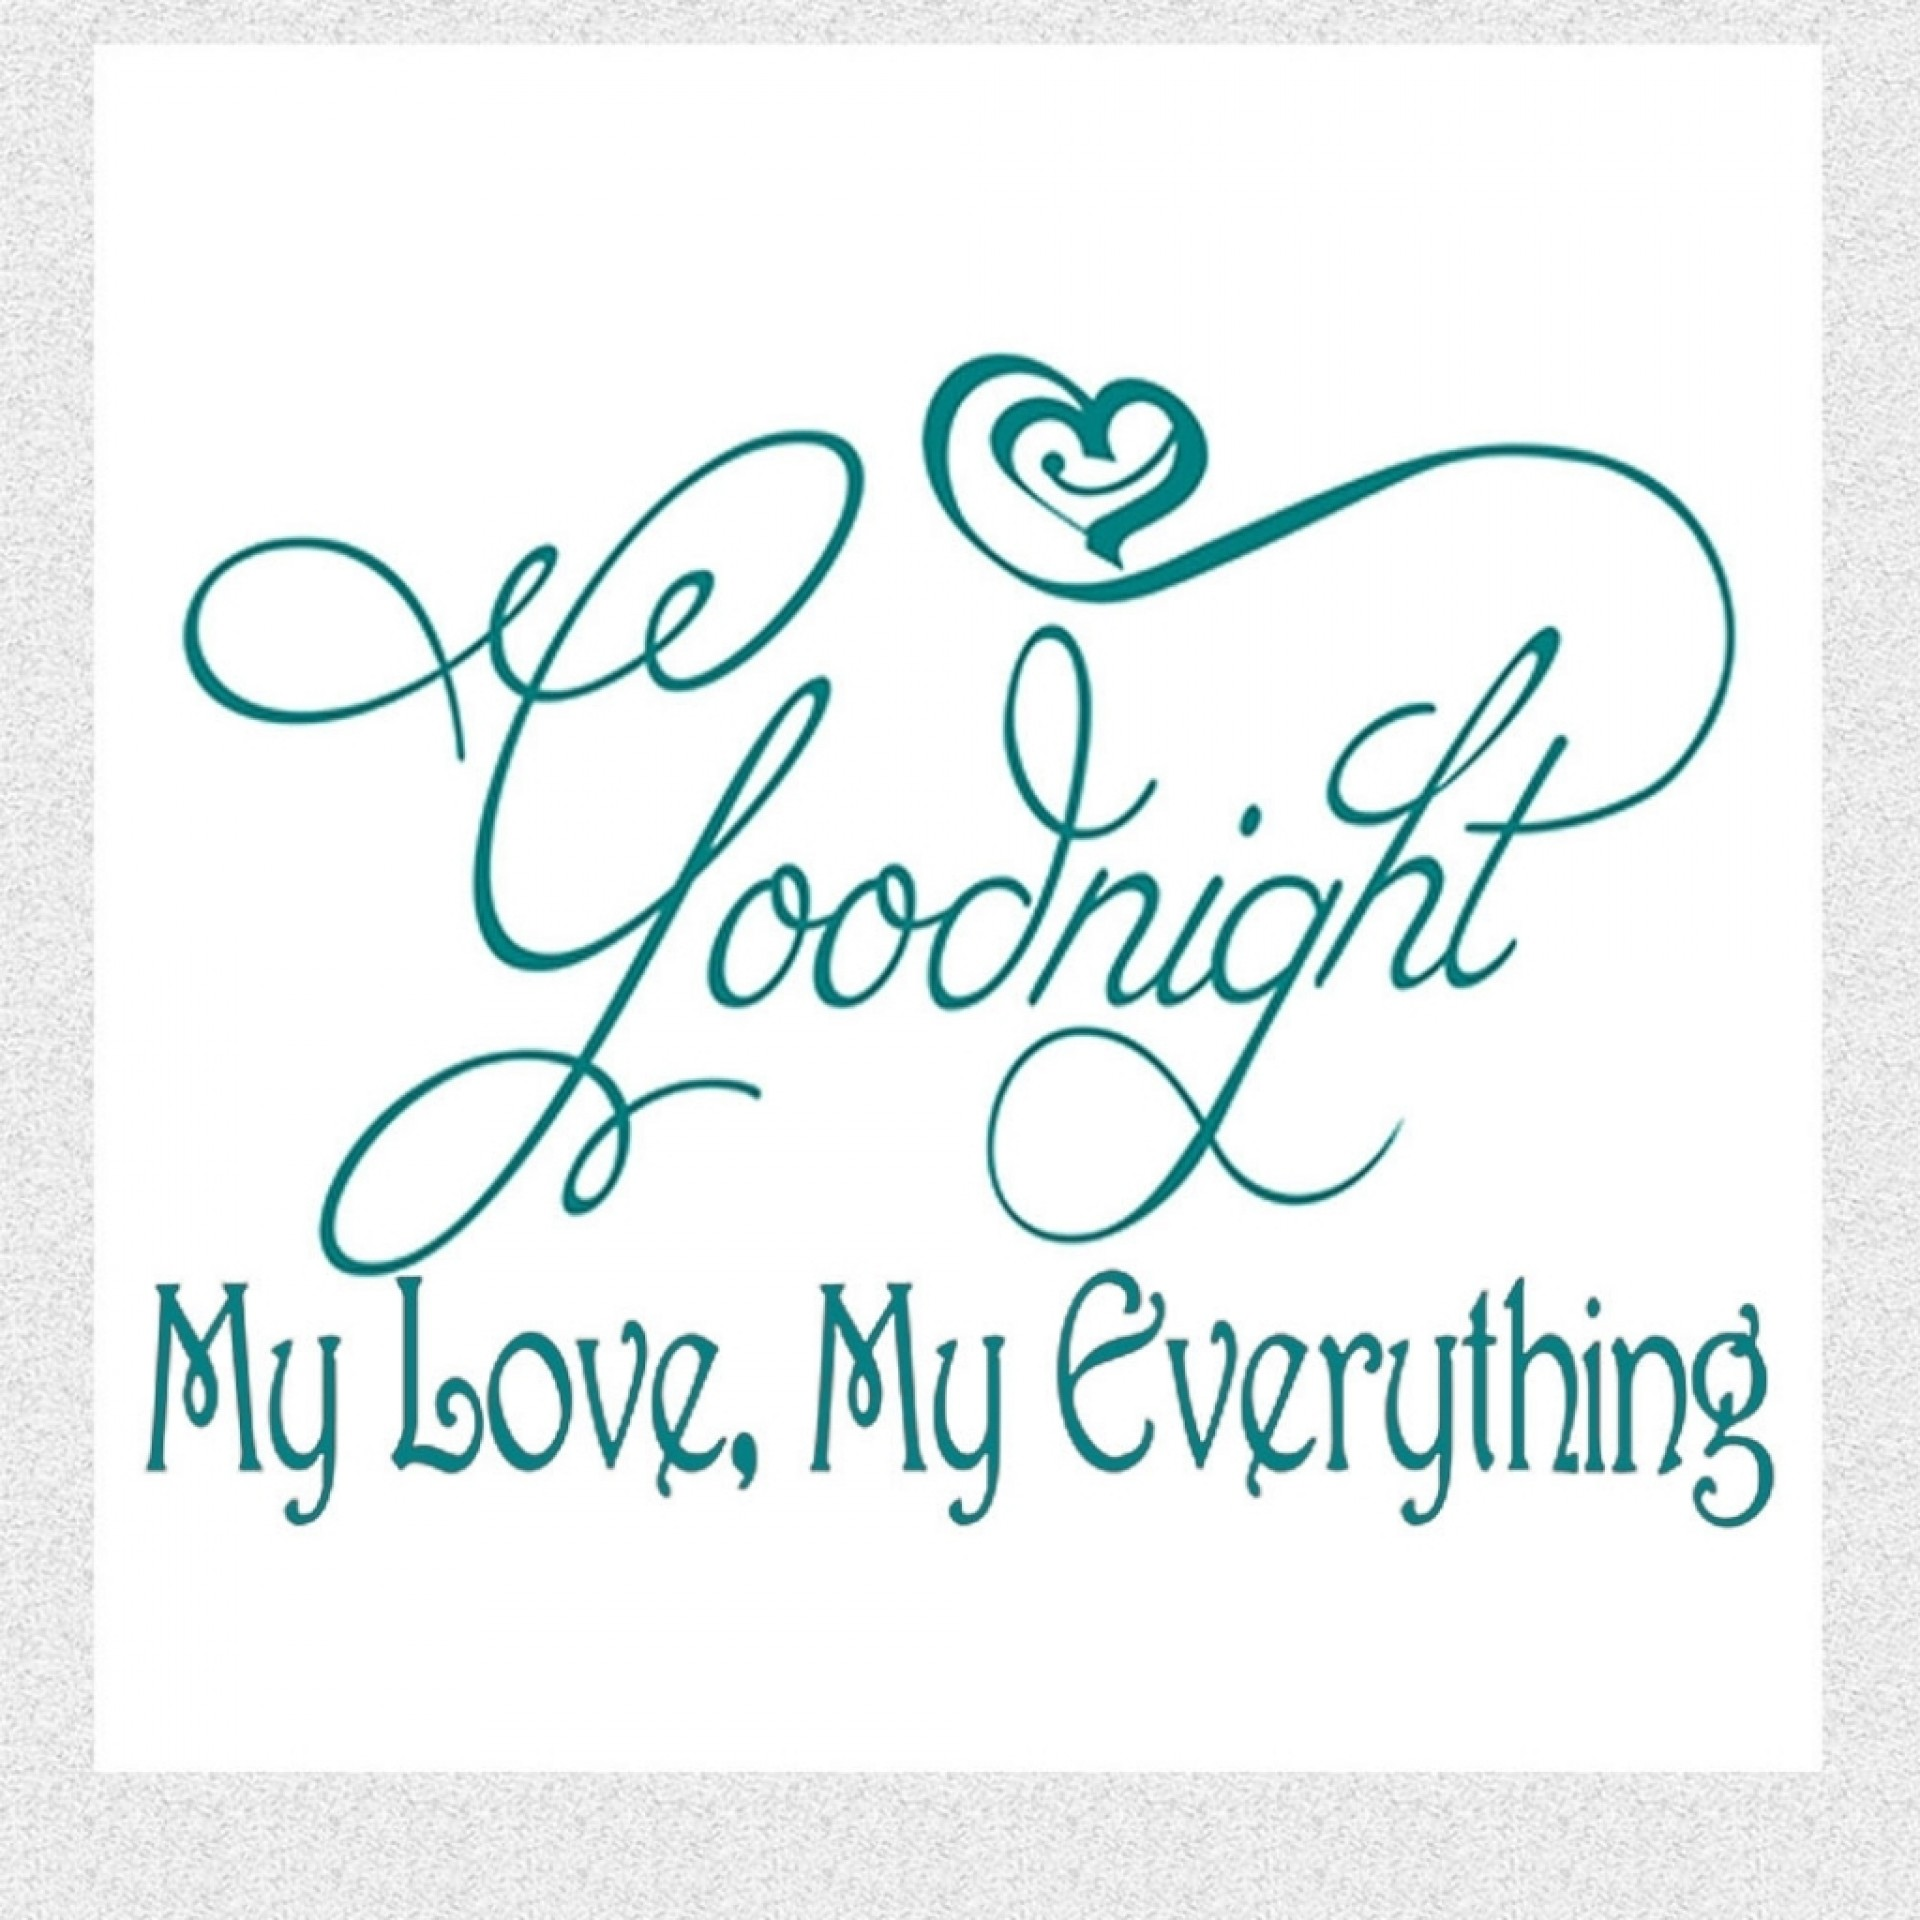 1920x1920 Download Goodnight My Love Quotes Images Iphone 7. wallpapers ...